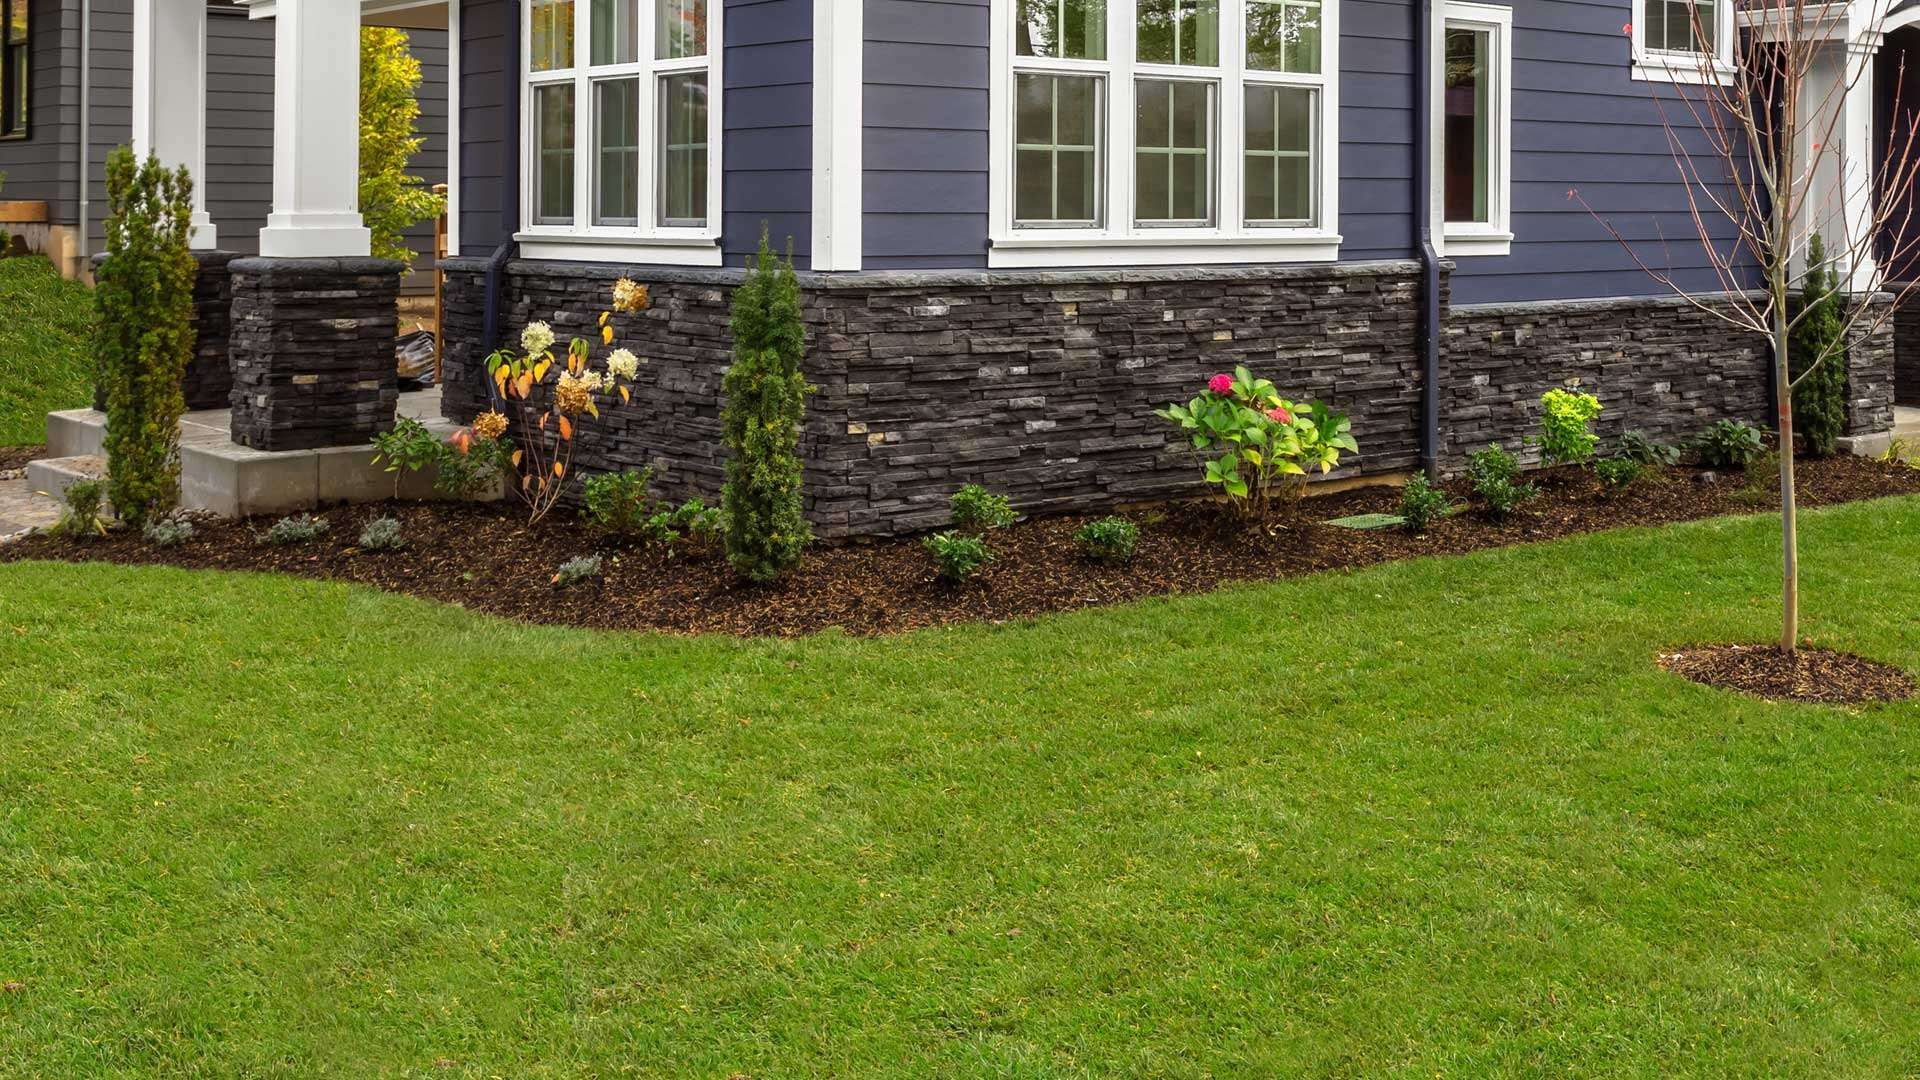 Professionally maintained landscaping bed at a home in Bogalusa, LA..